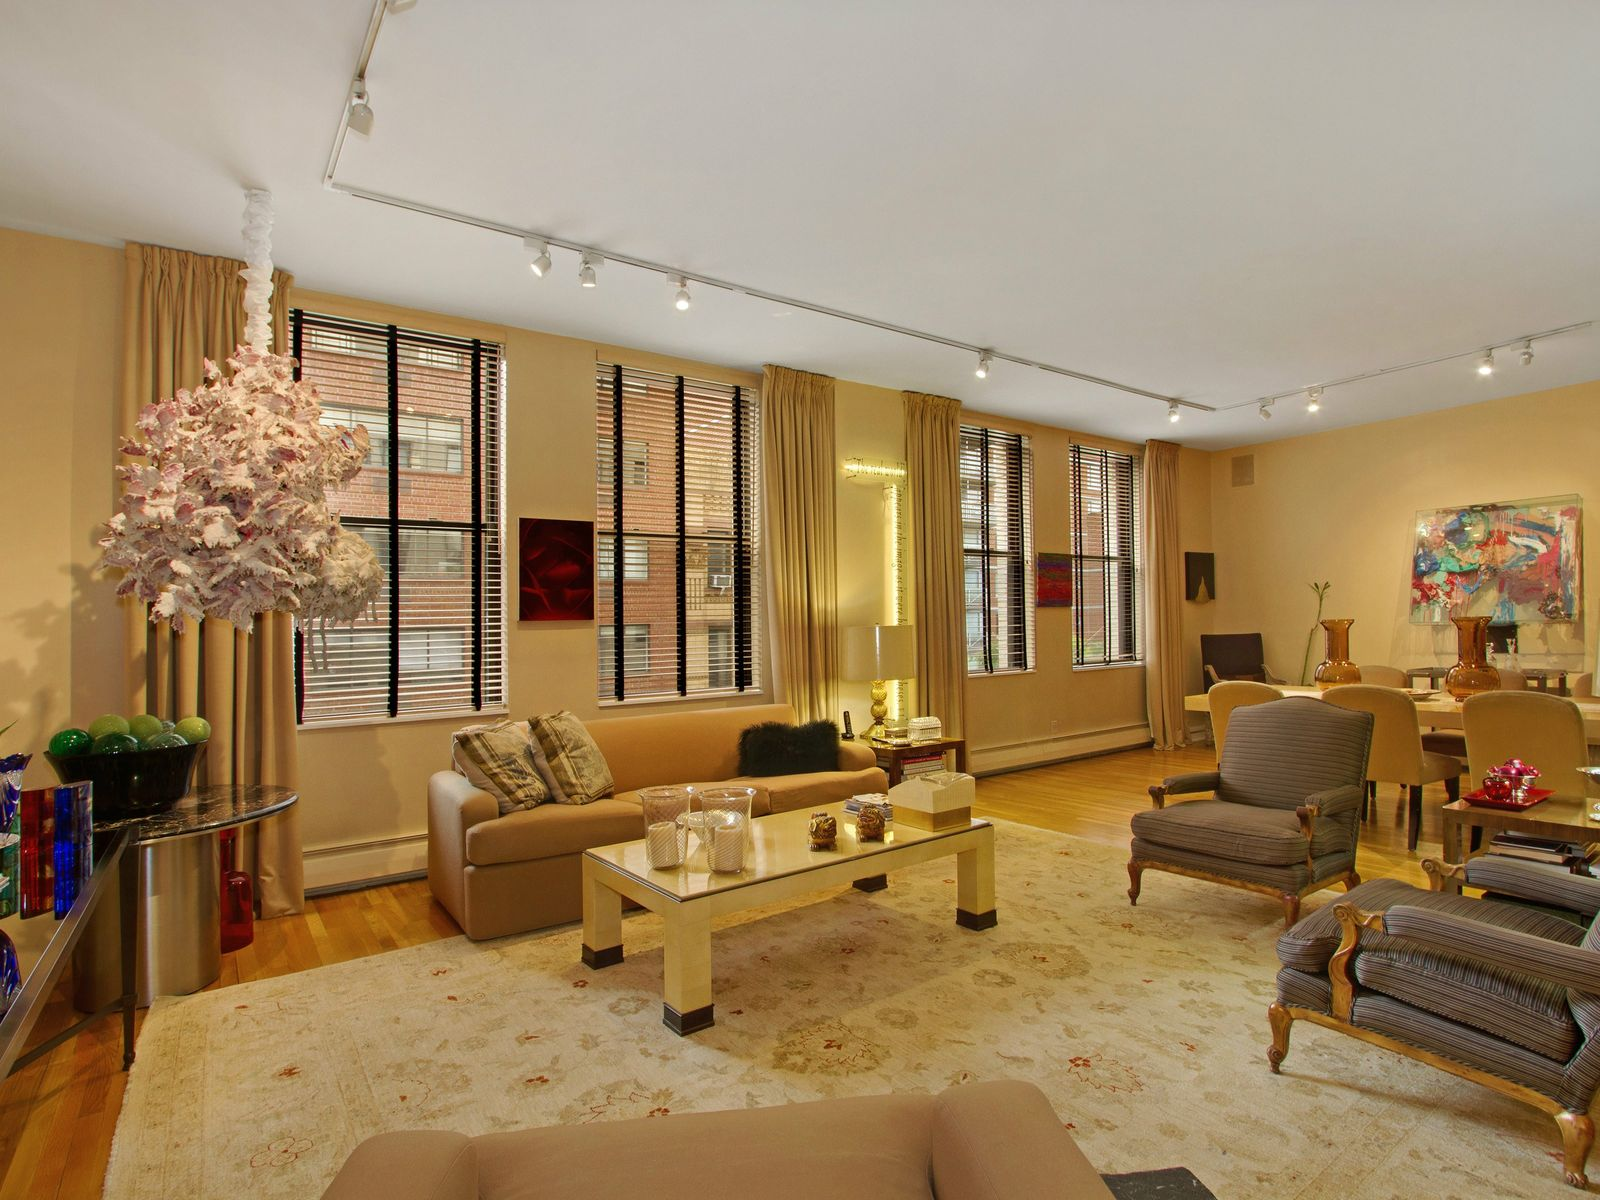 257 West 17th Street, Apartment 4D, New York NY Condominium - New York City Real Estate